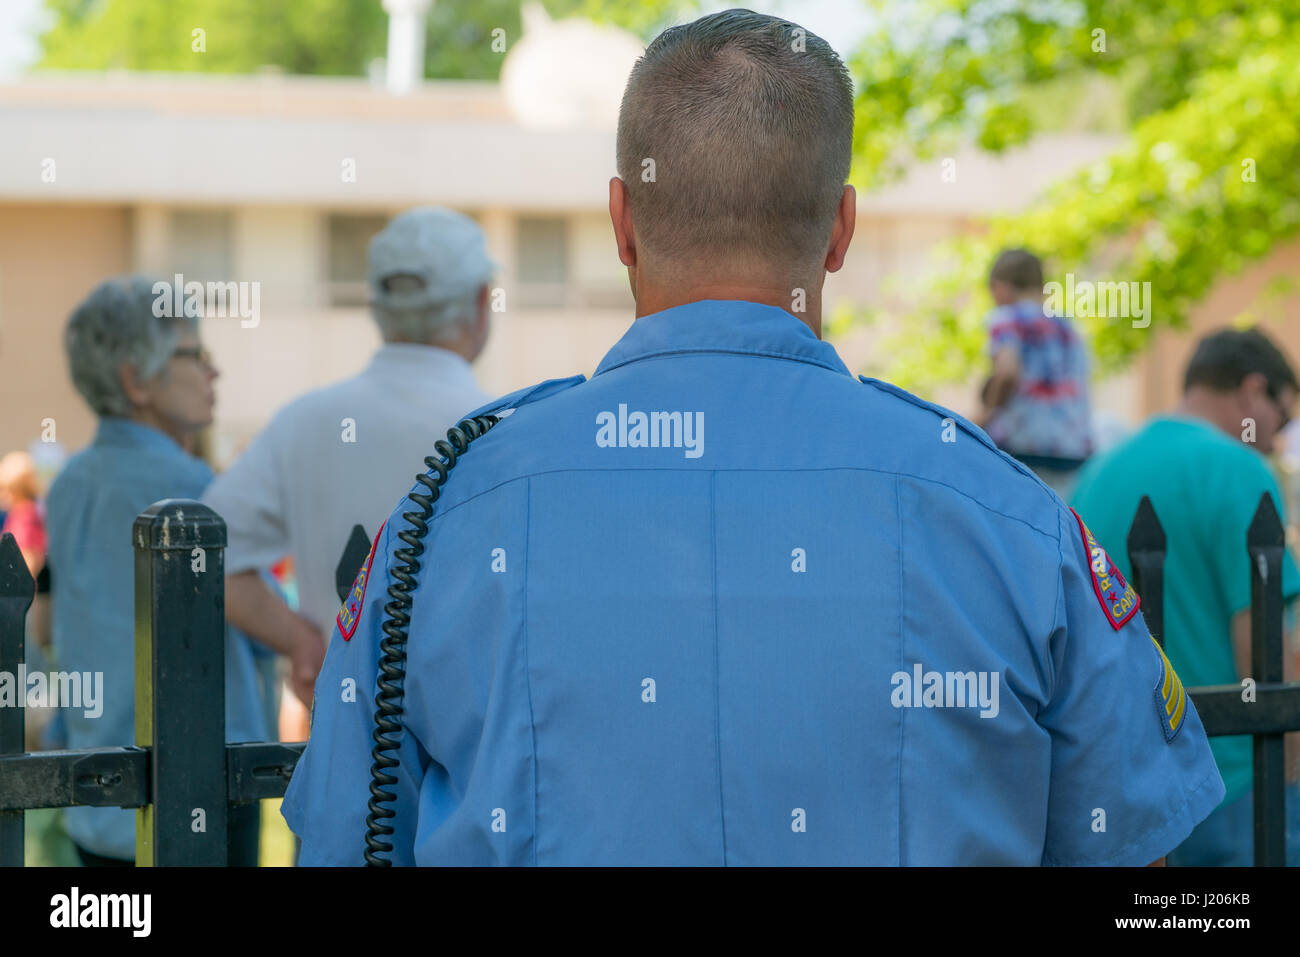 A cop stands ready to keep order at the Raleigh March for Science on April 22, 2017 Stock Photo